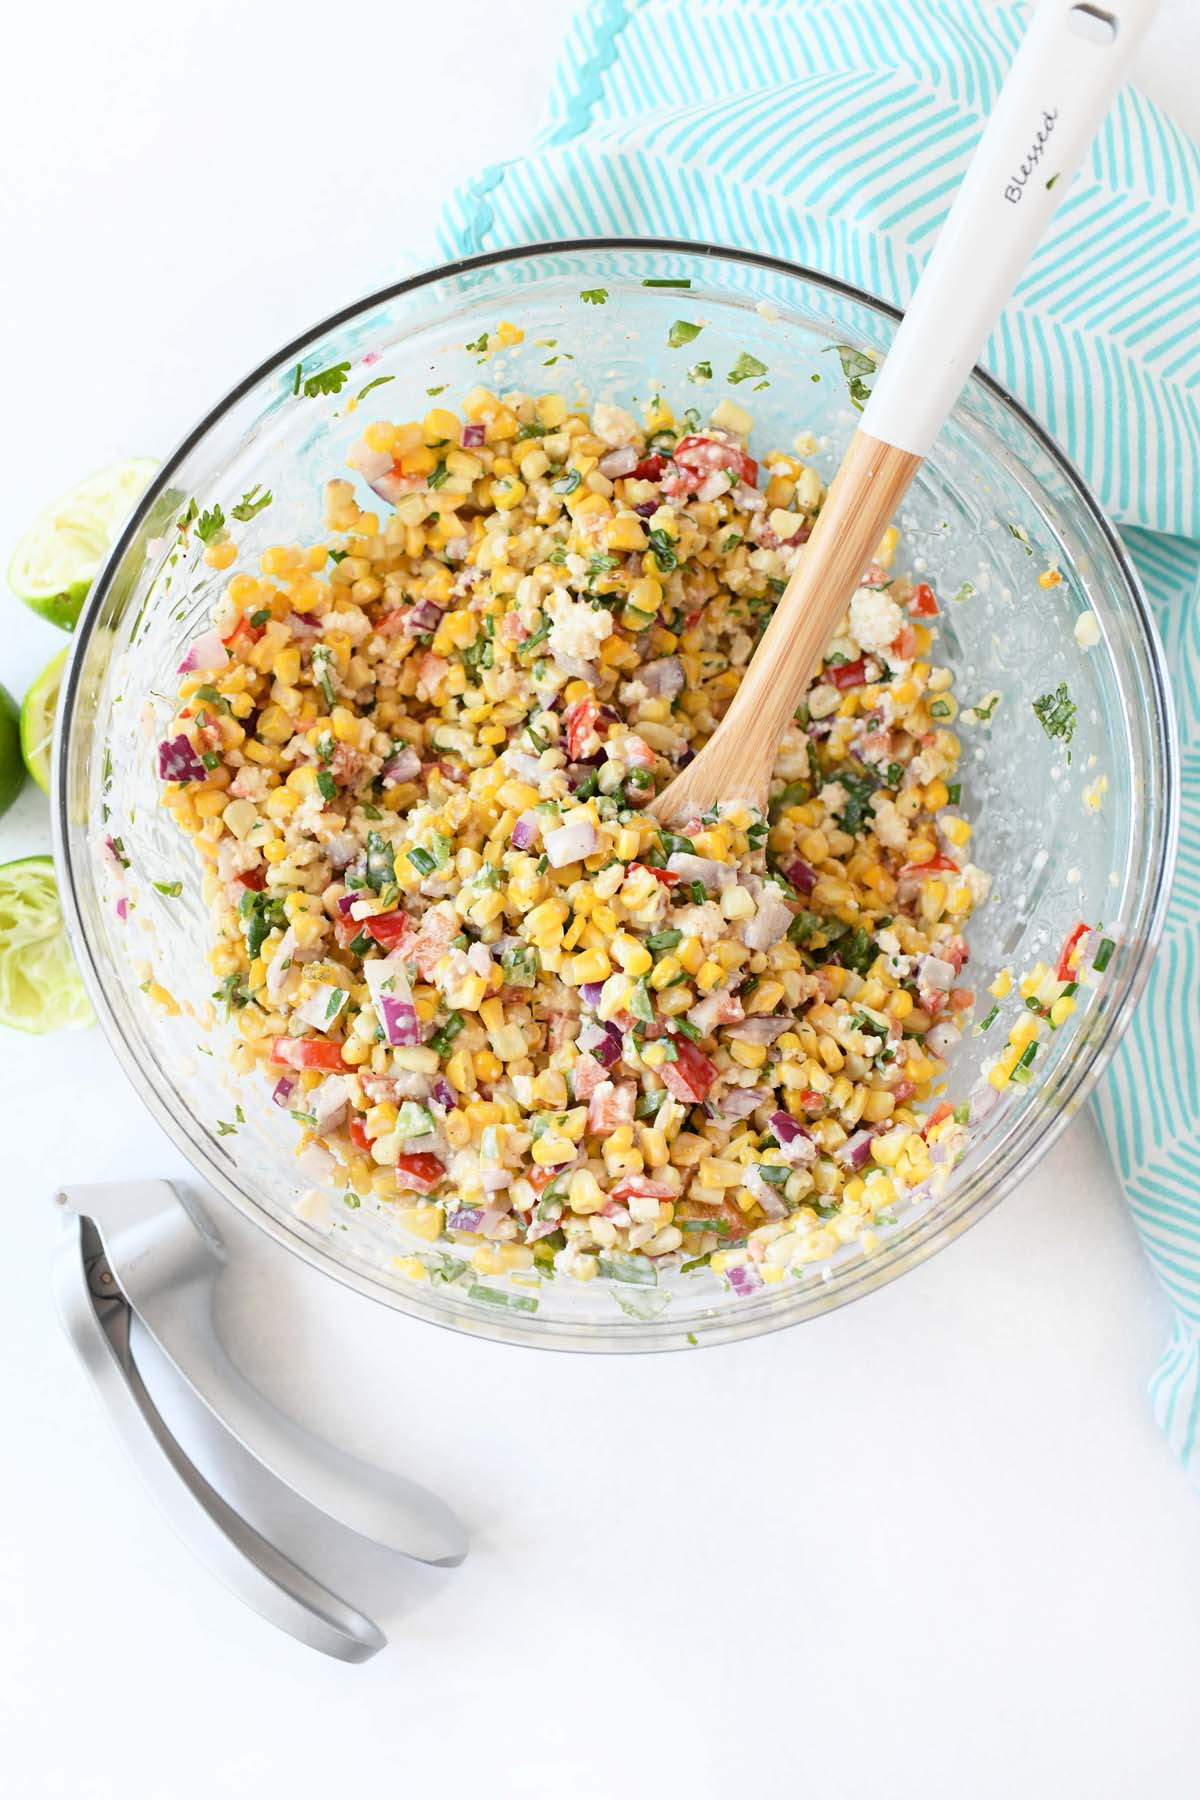 Mexican Street Corn Salad  in a glass bowl with a blue napkin.